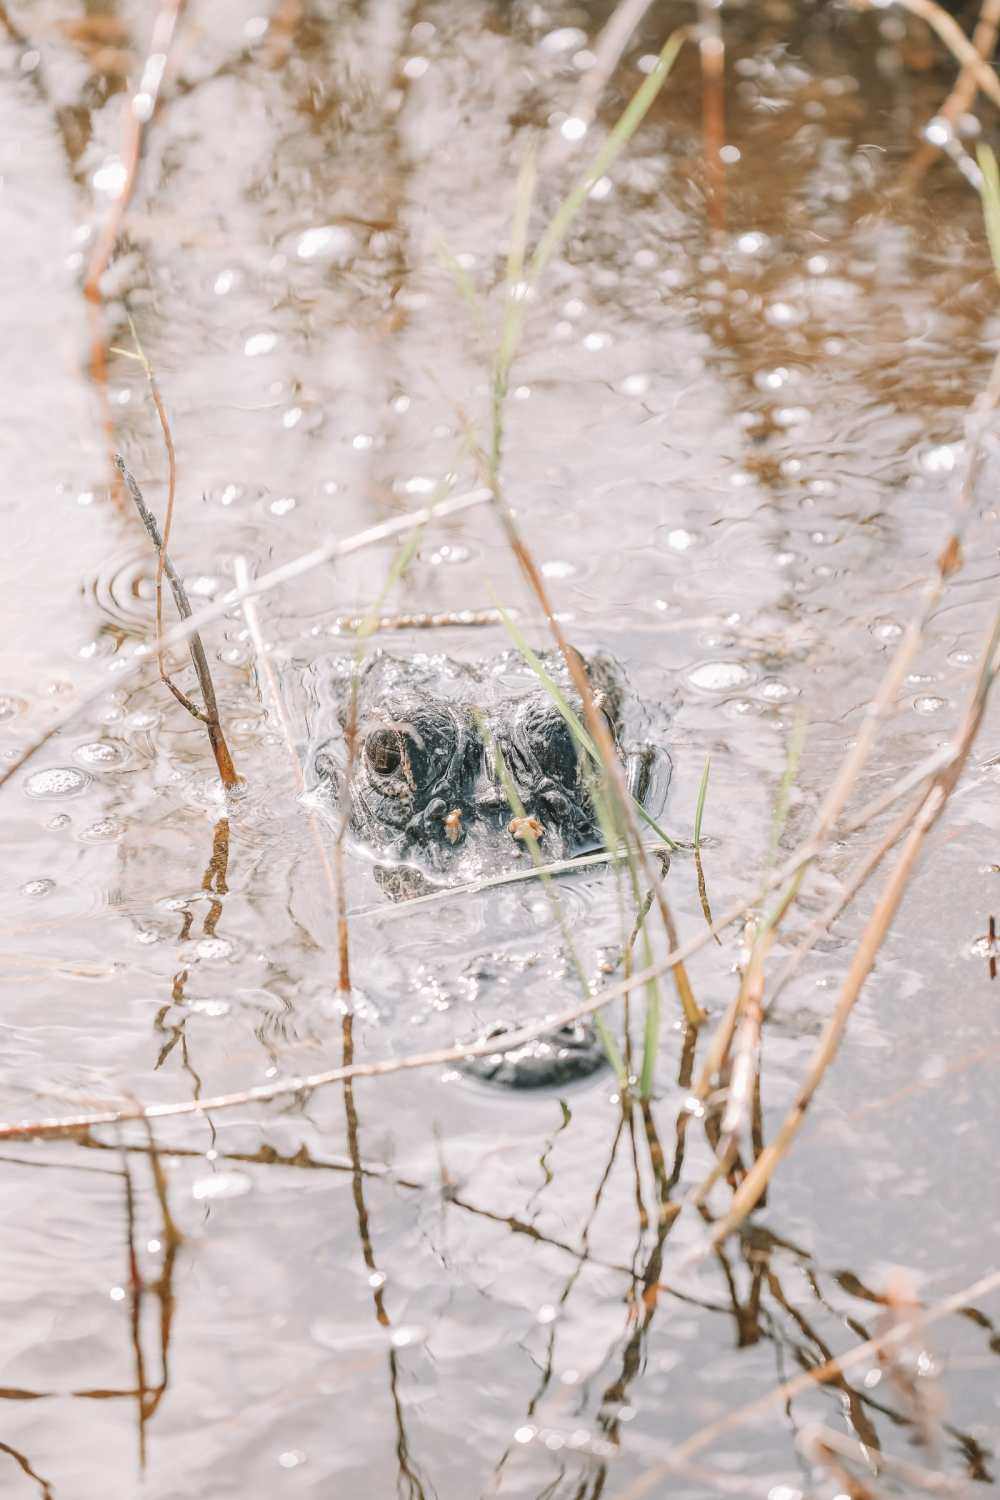 Searching For Wild Alligators in Florida (22)